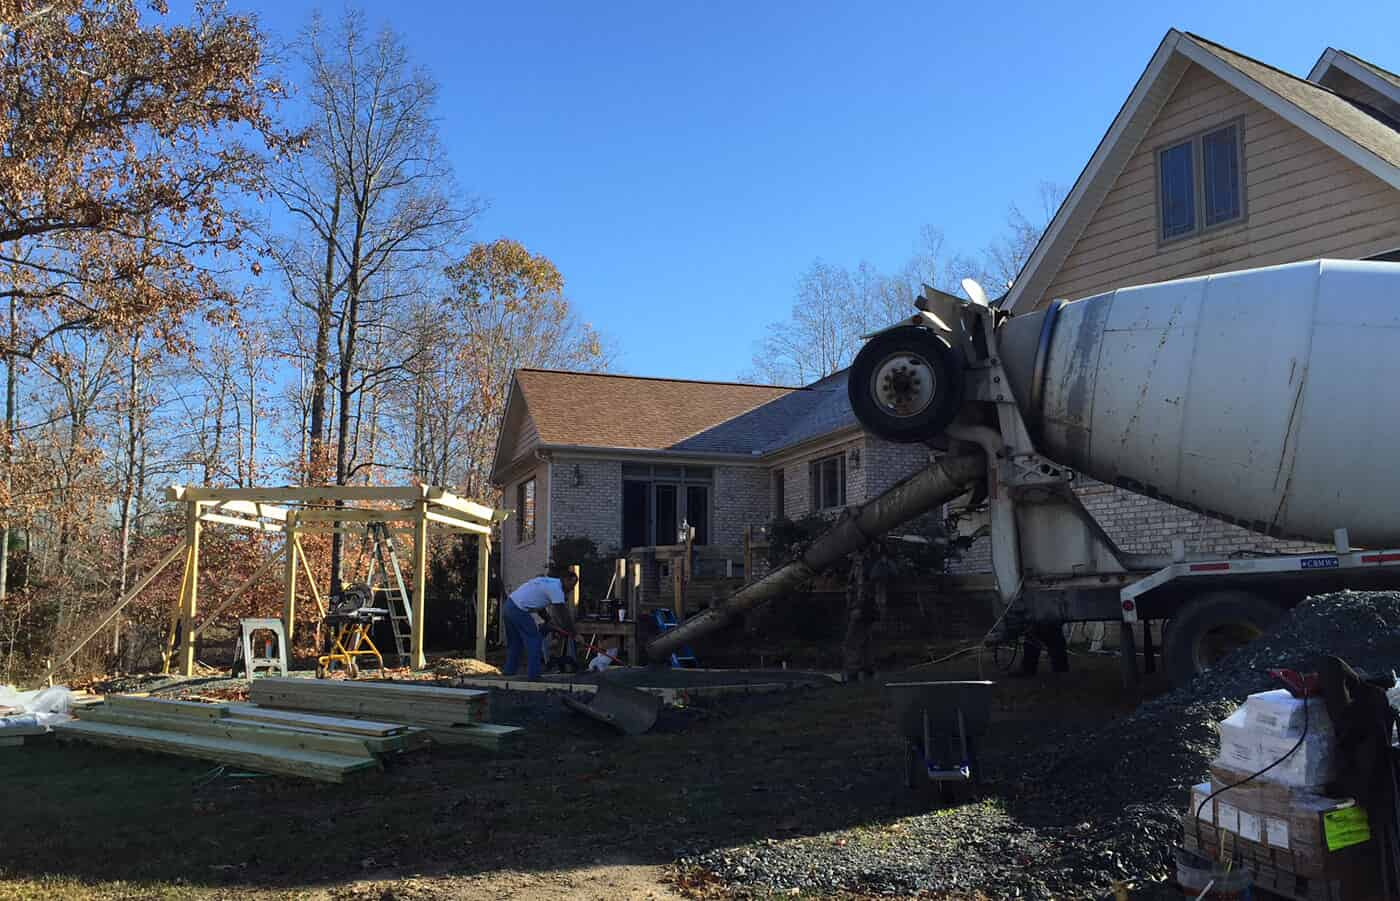 cement truck in front of house with gazebo under construction